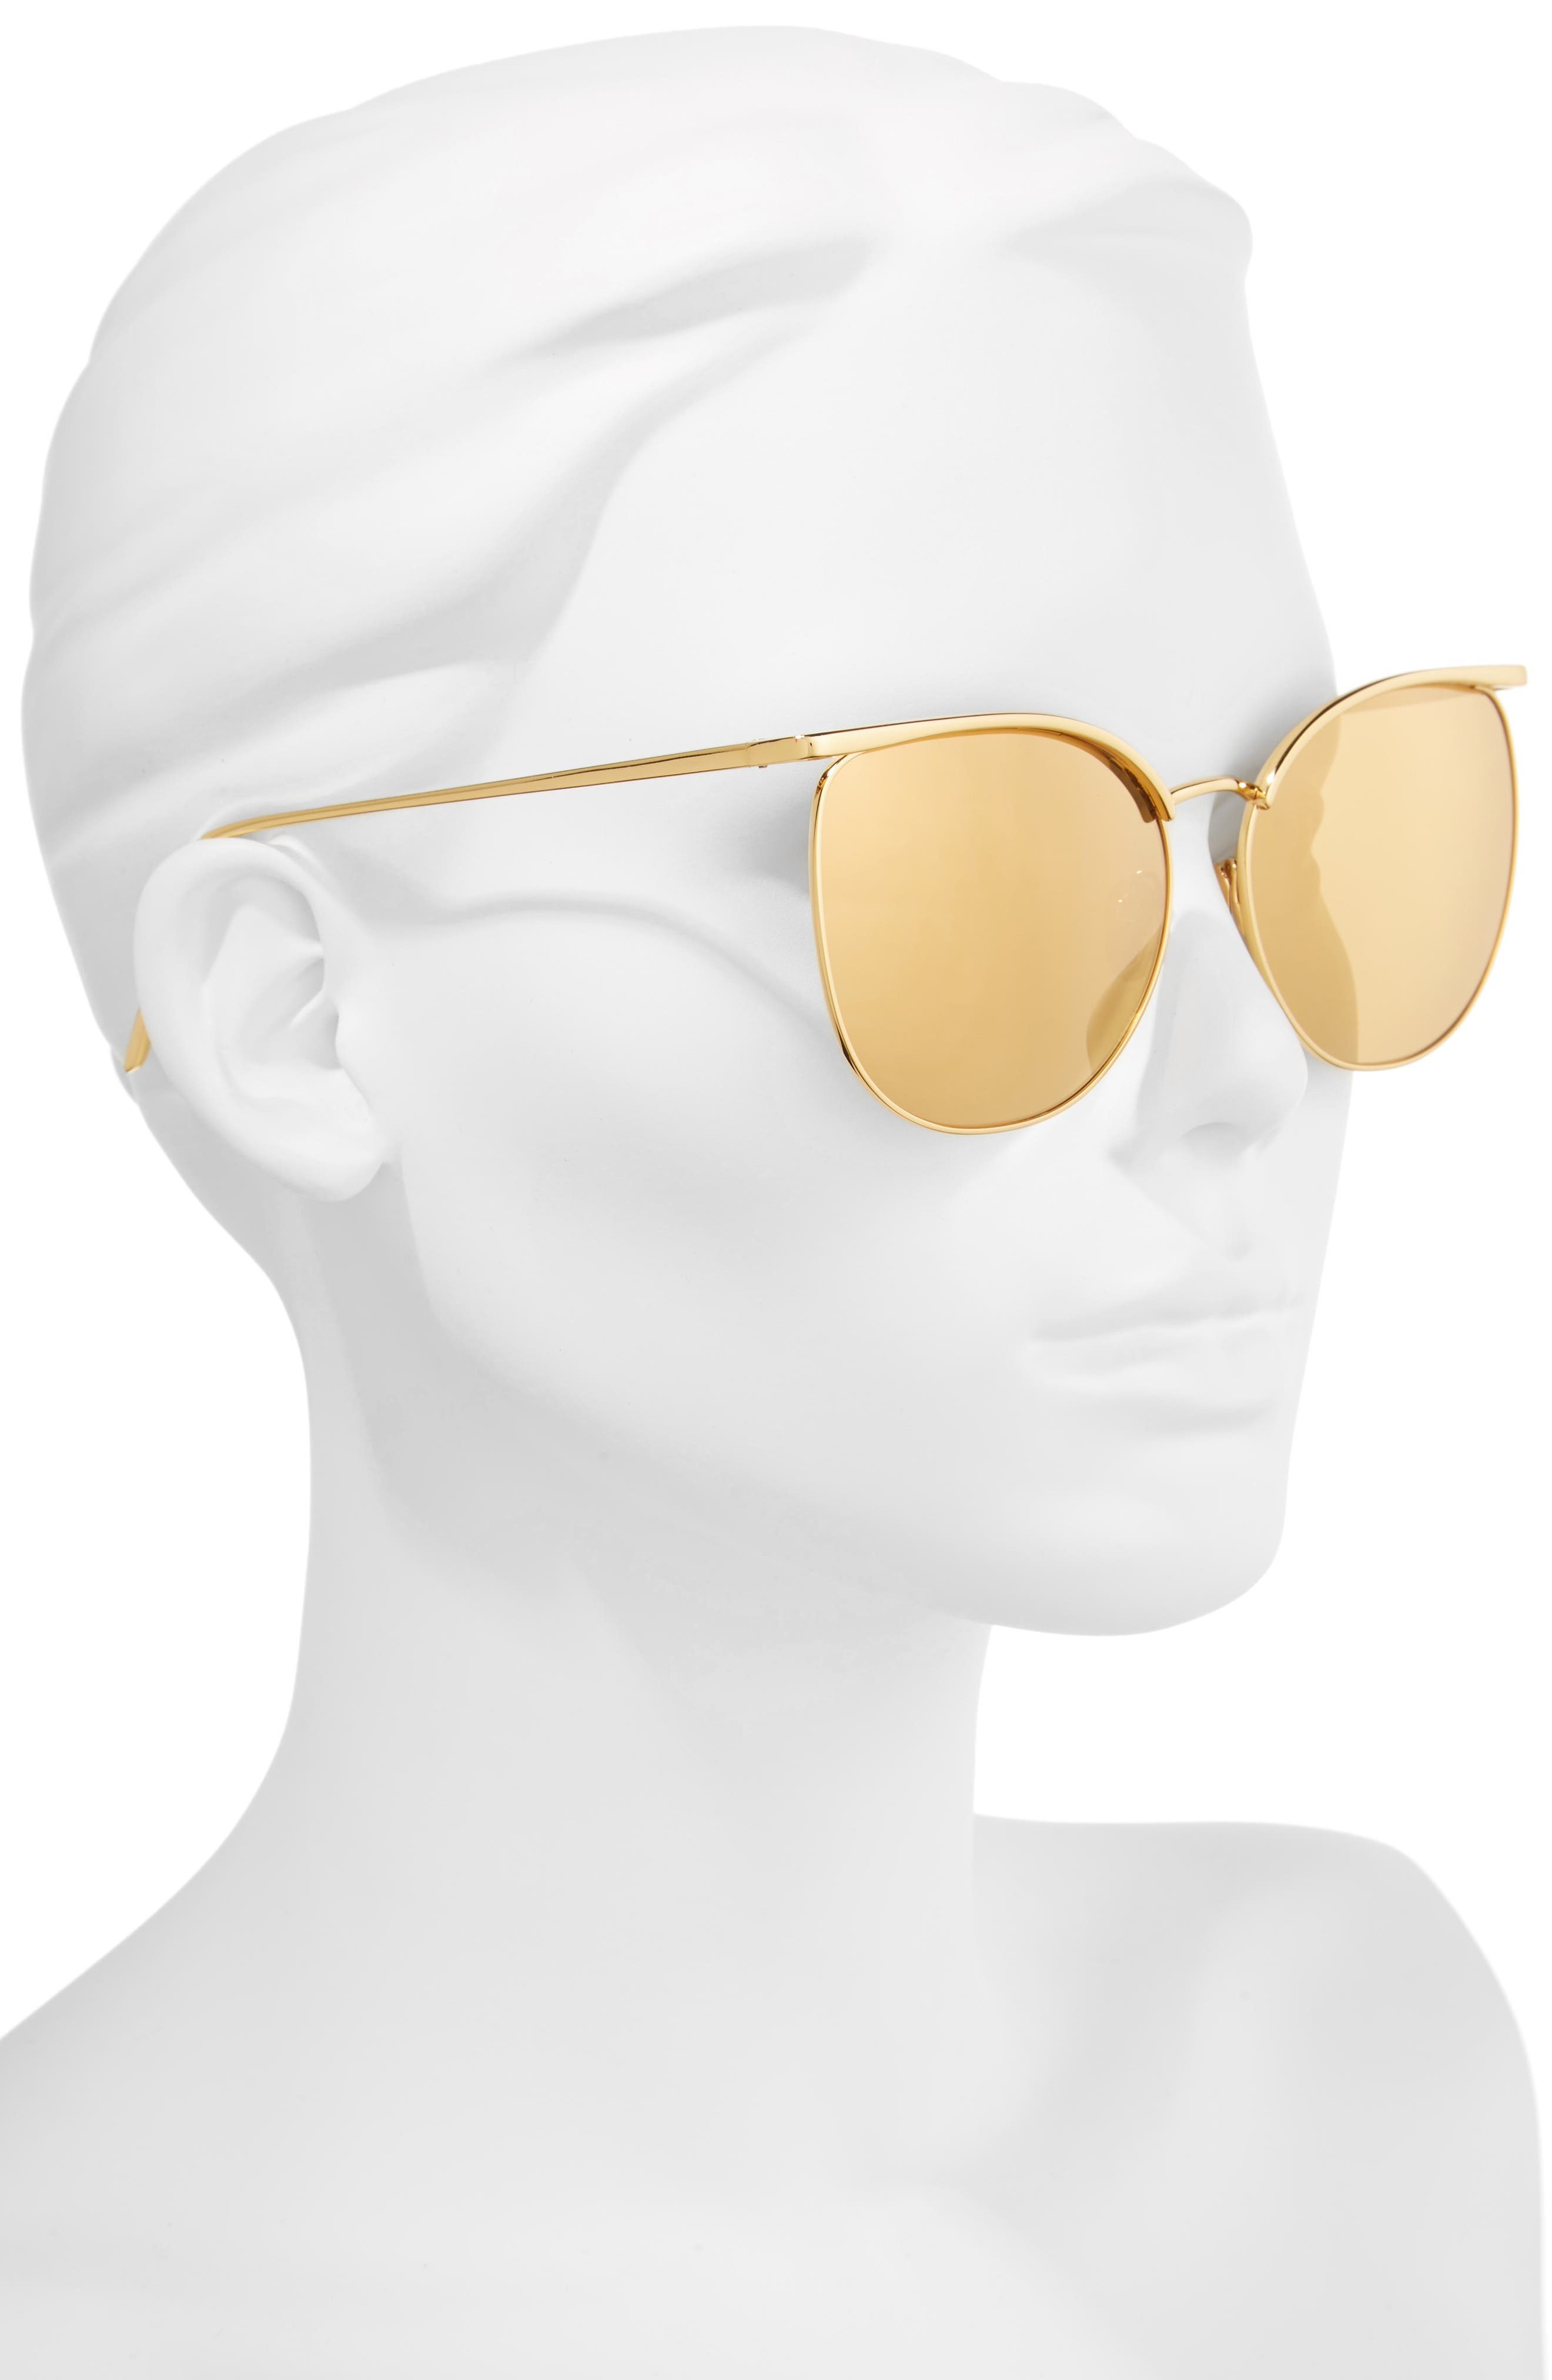 59mm Mirrored 22 Karat Gold Trim Sunglasses,                             Alternate thumbnail 2, color,                             Yellow Gold/ Gold